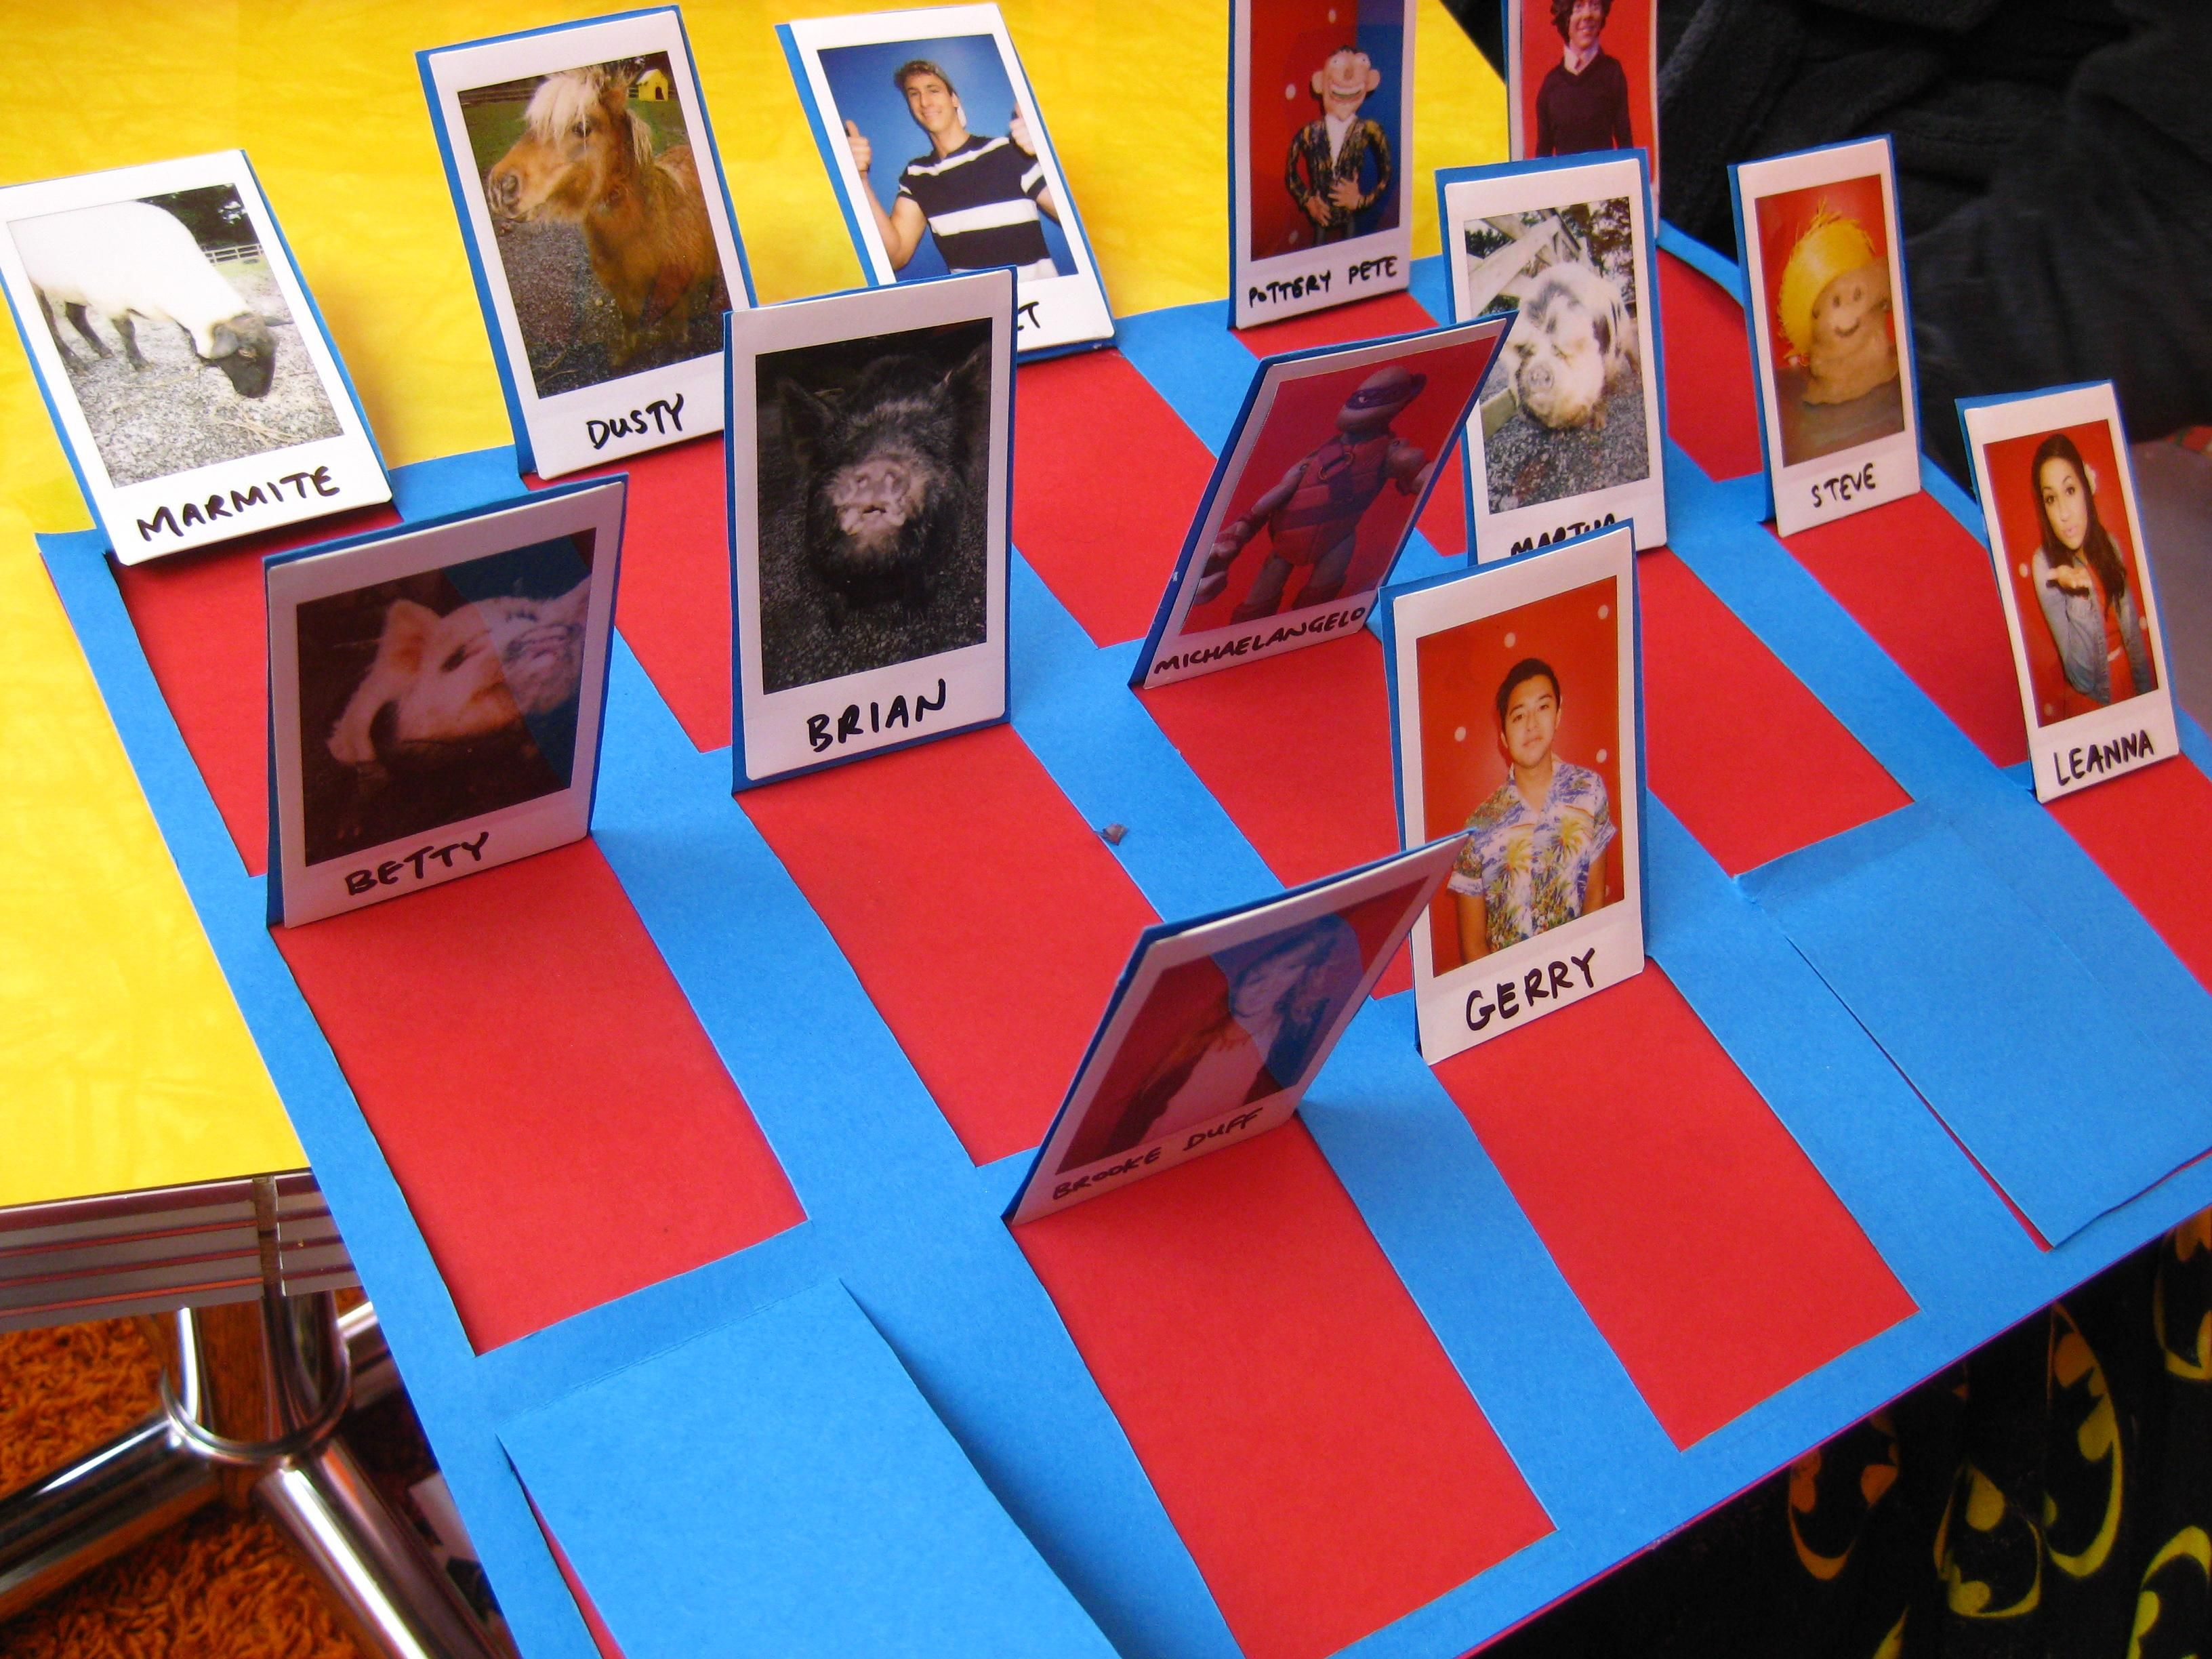 Find all the instructions for the Guess Who game here and learn